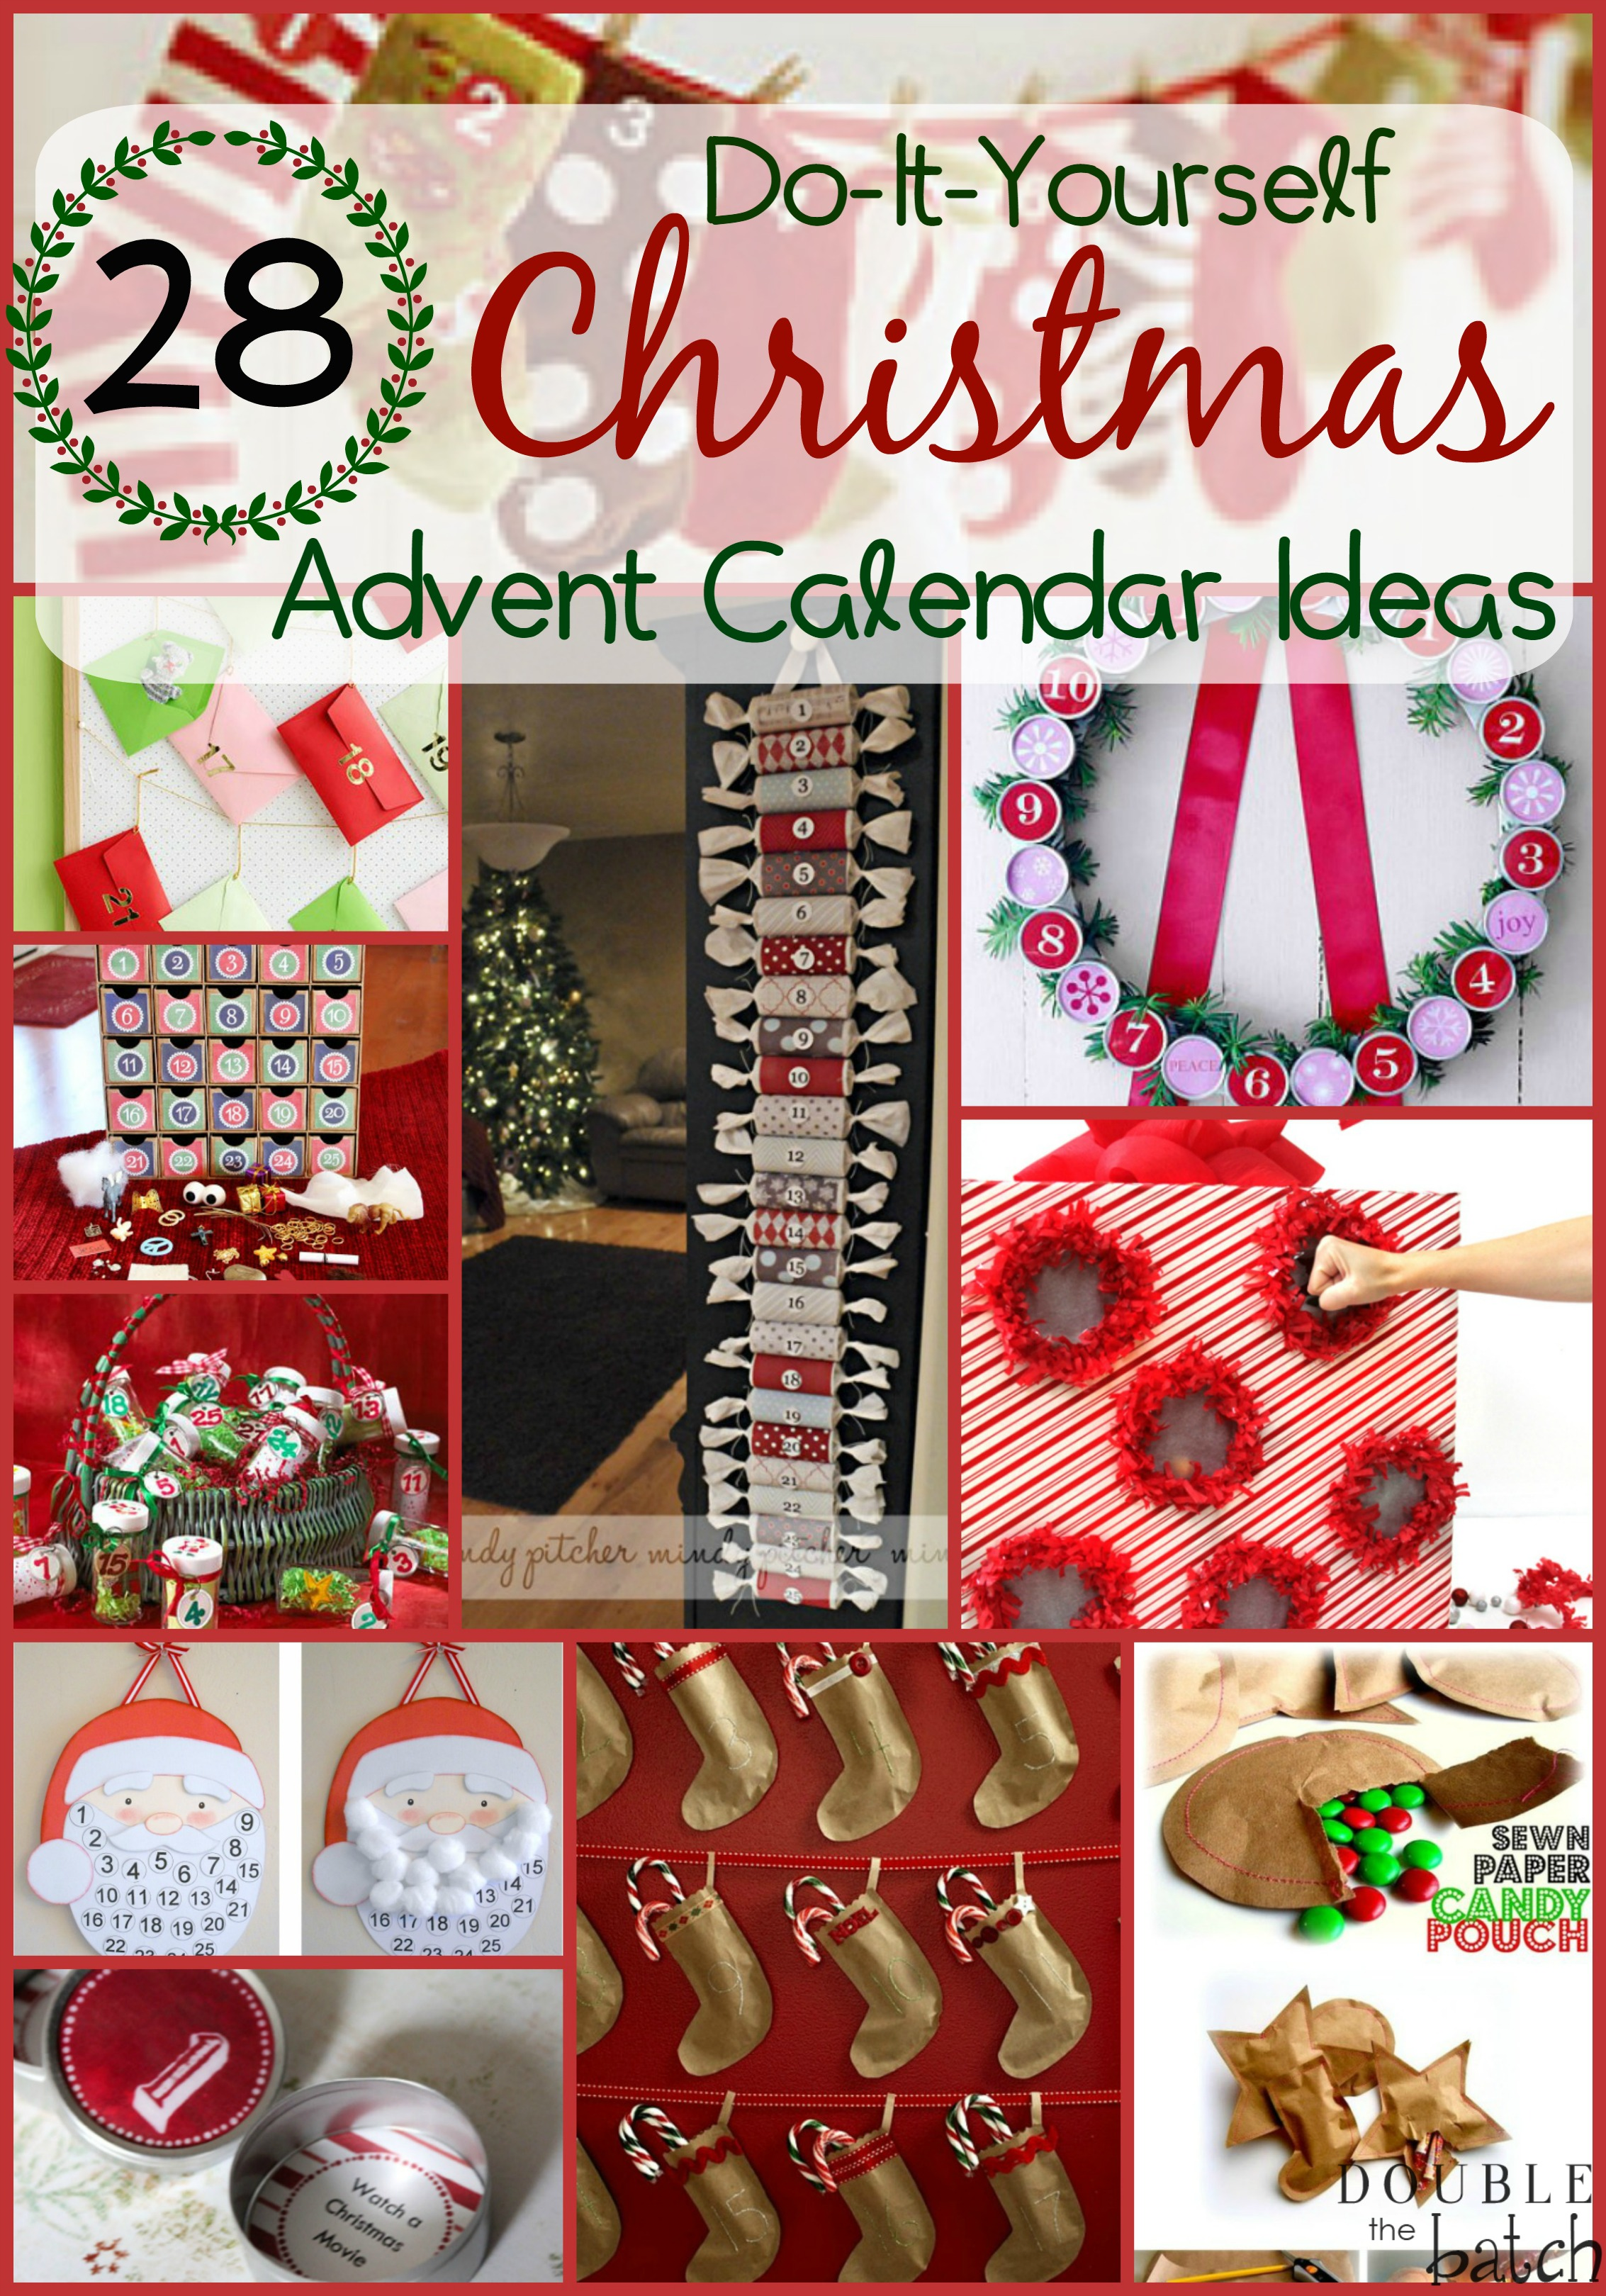 Diy Christian Advent Calendar : Diy christmas advent calendar ideas